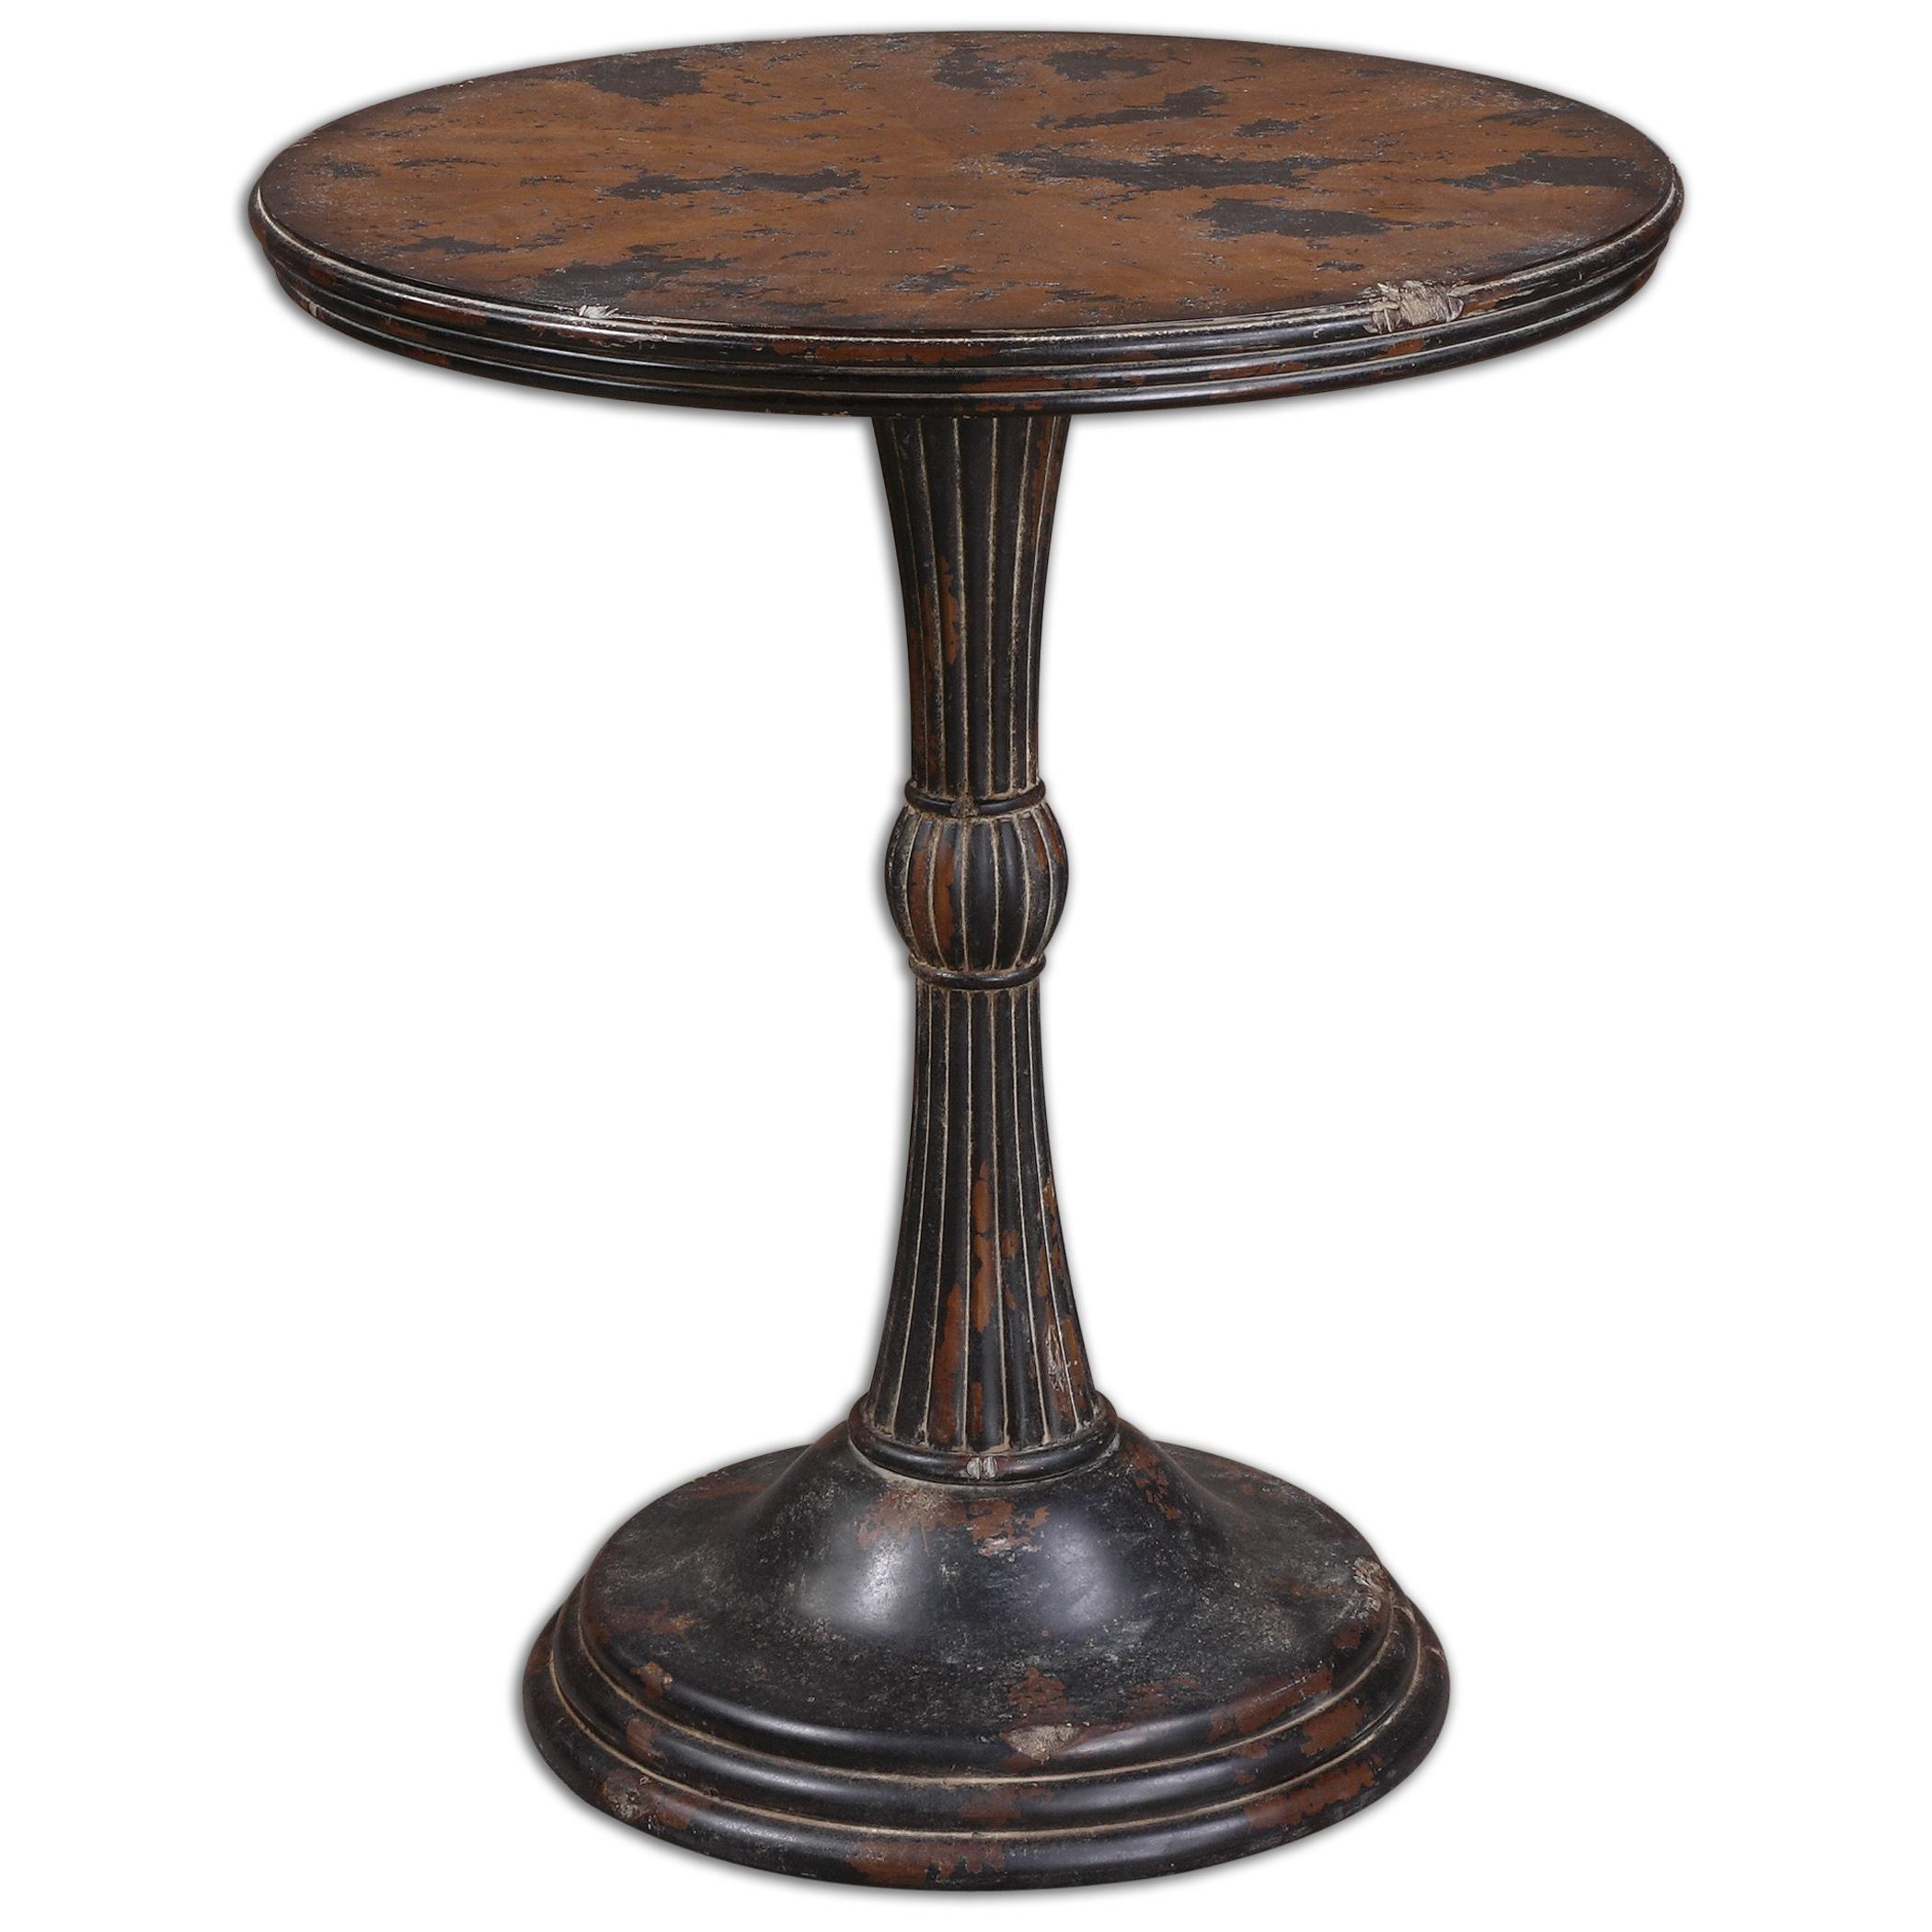 Uttermost Accent Furniture Benton Accent Table - Item Number: 24163